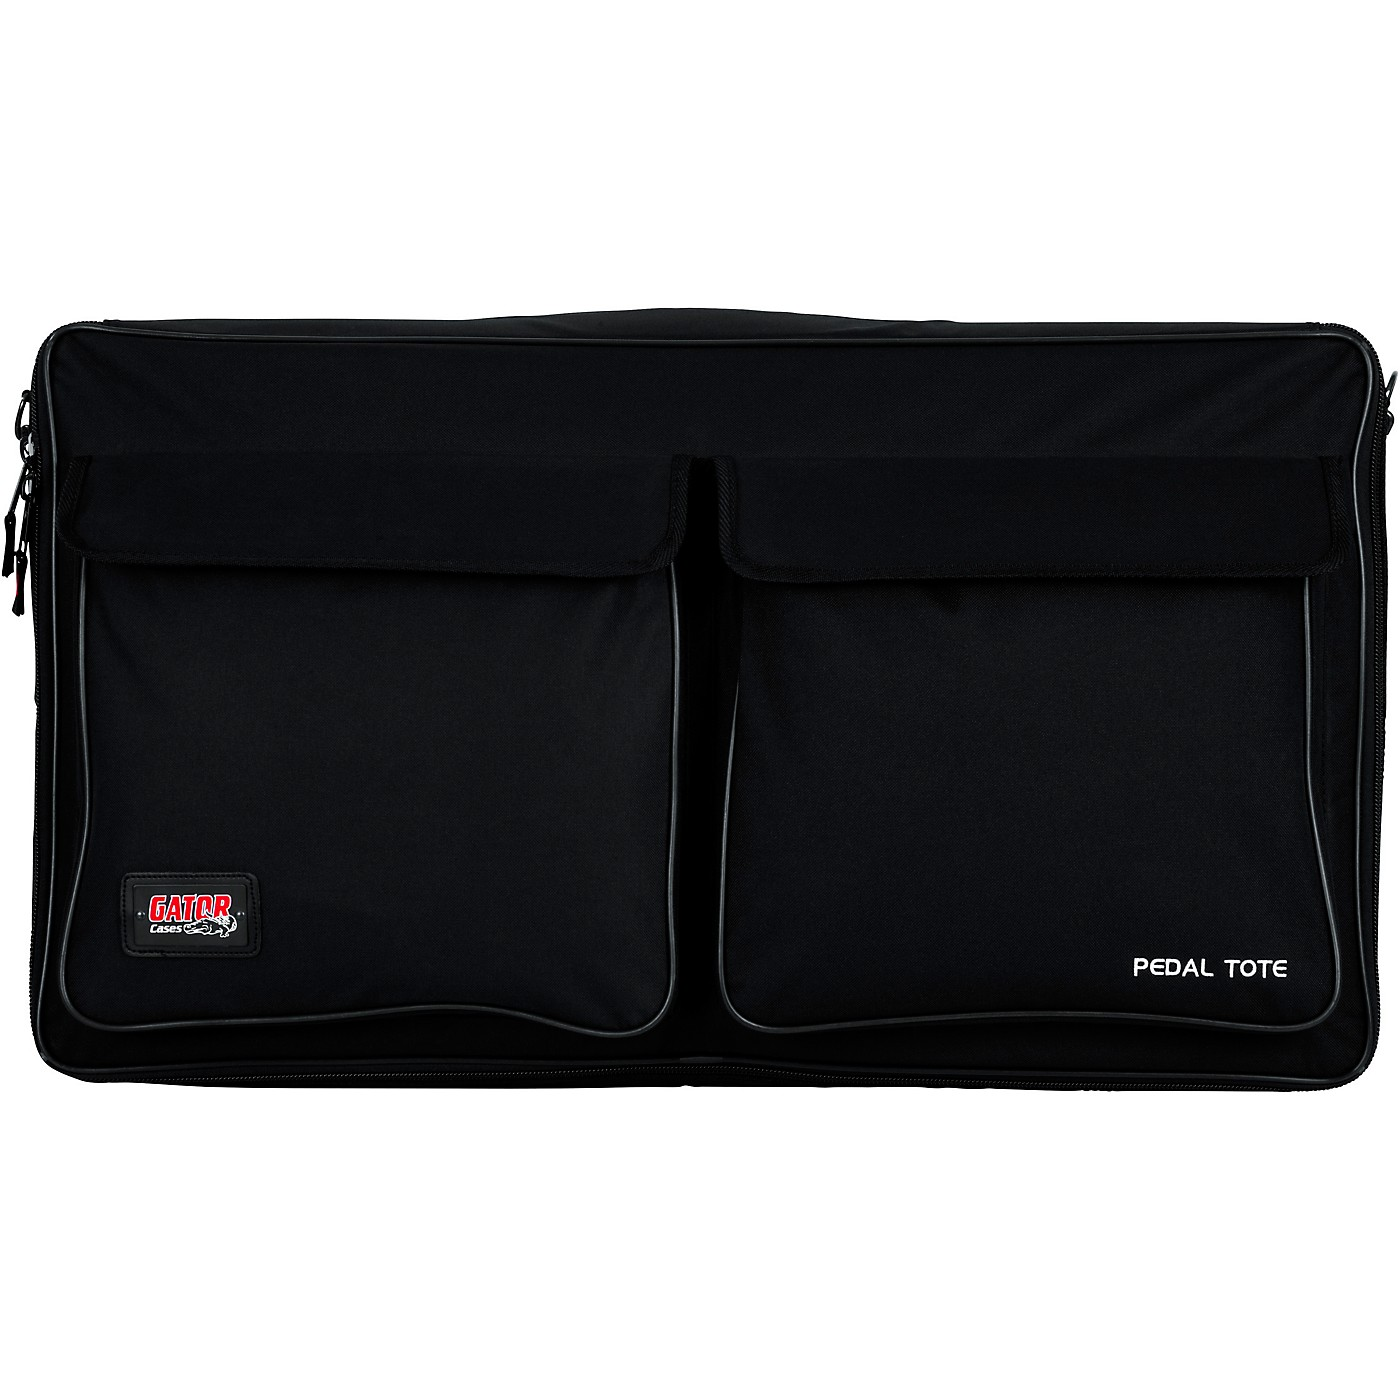 Gator GPT-PRO Pedal Tote Pro Pedal Board with Carry Bag thumbnail